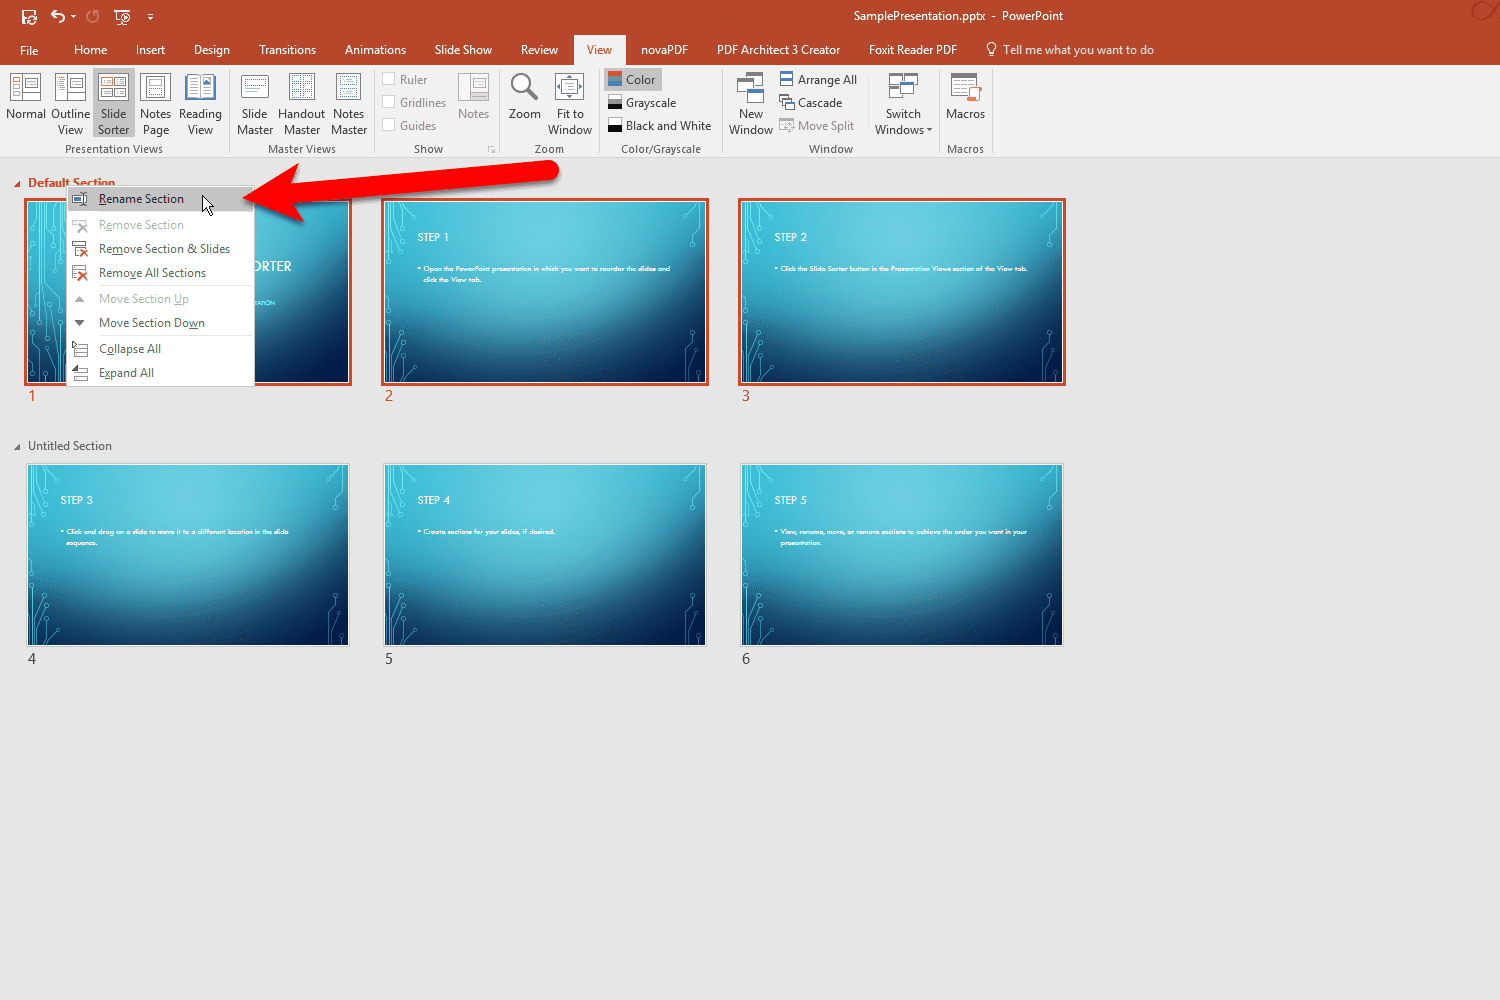 how to select and move section